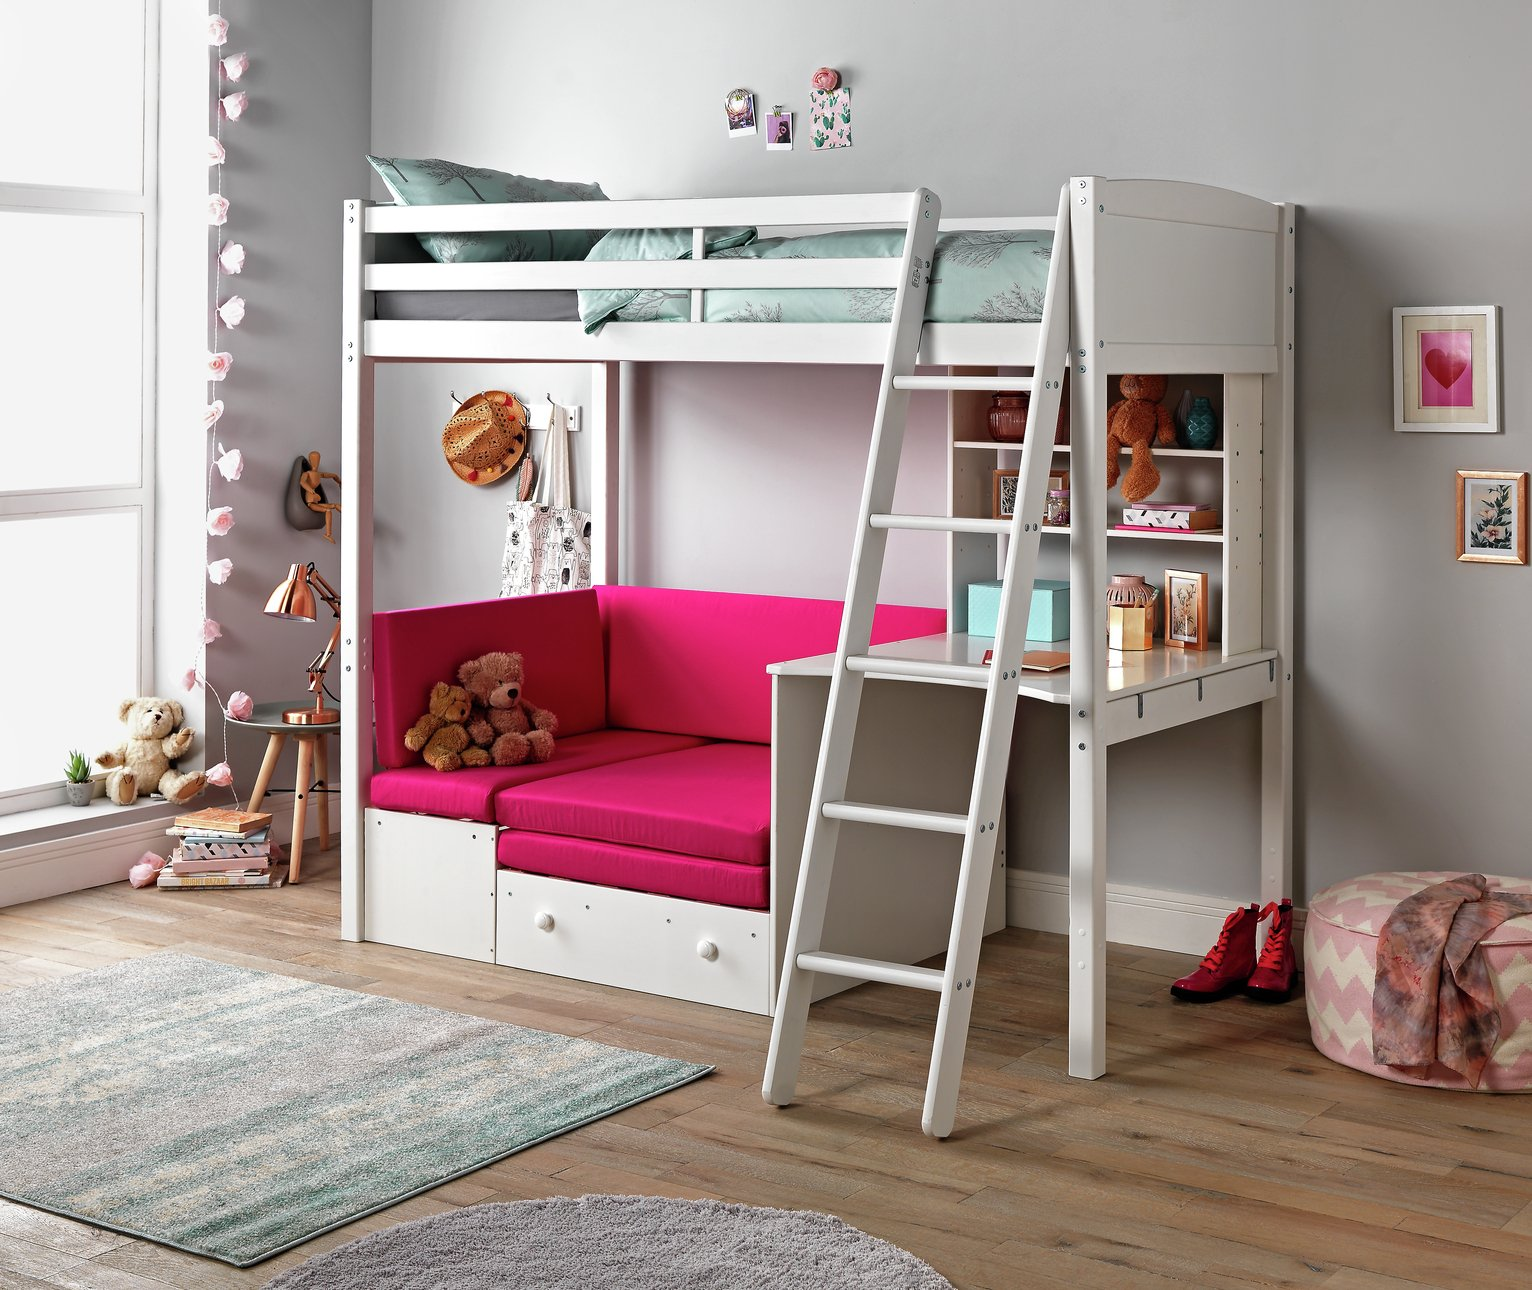 Image of Classic High Sleeper Bed Frame with Fuchsia Sofa Bed- White